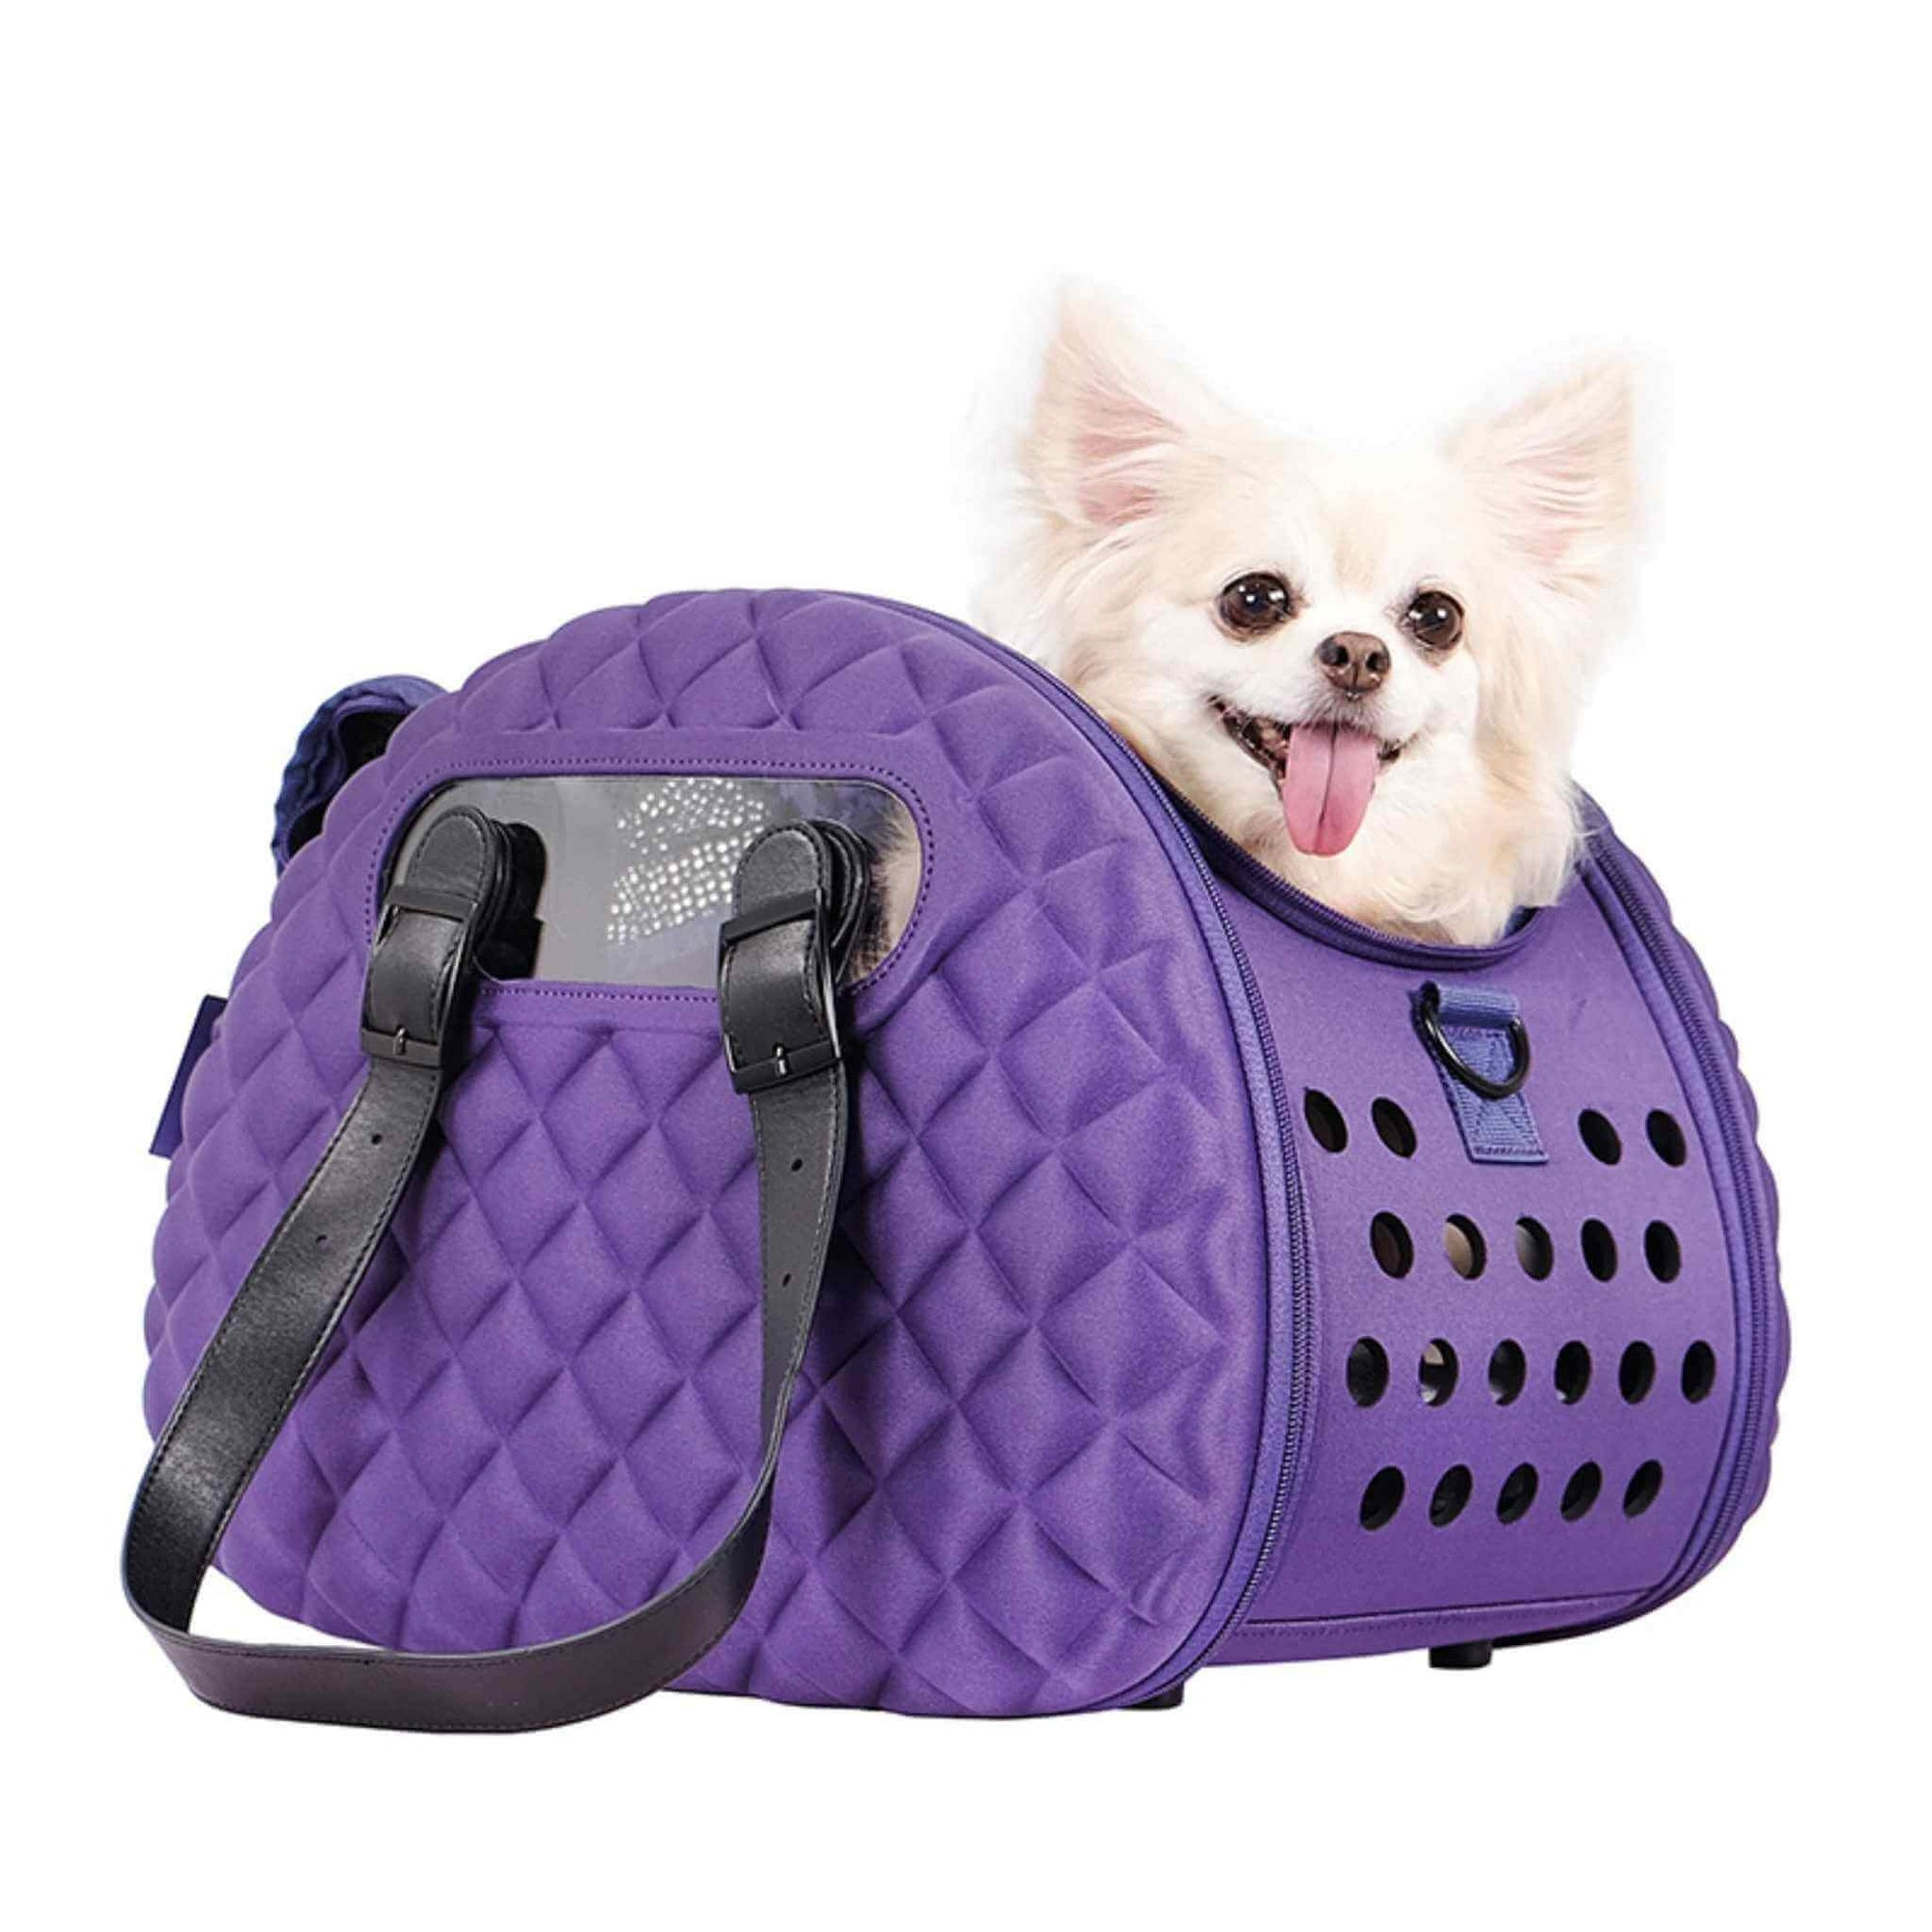 Diamond Deluxe Small Dog Carrier - with a Chihuahua